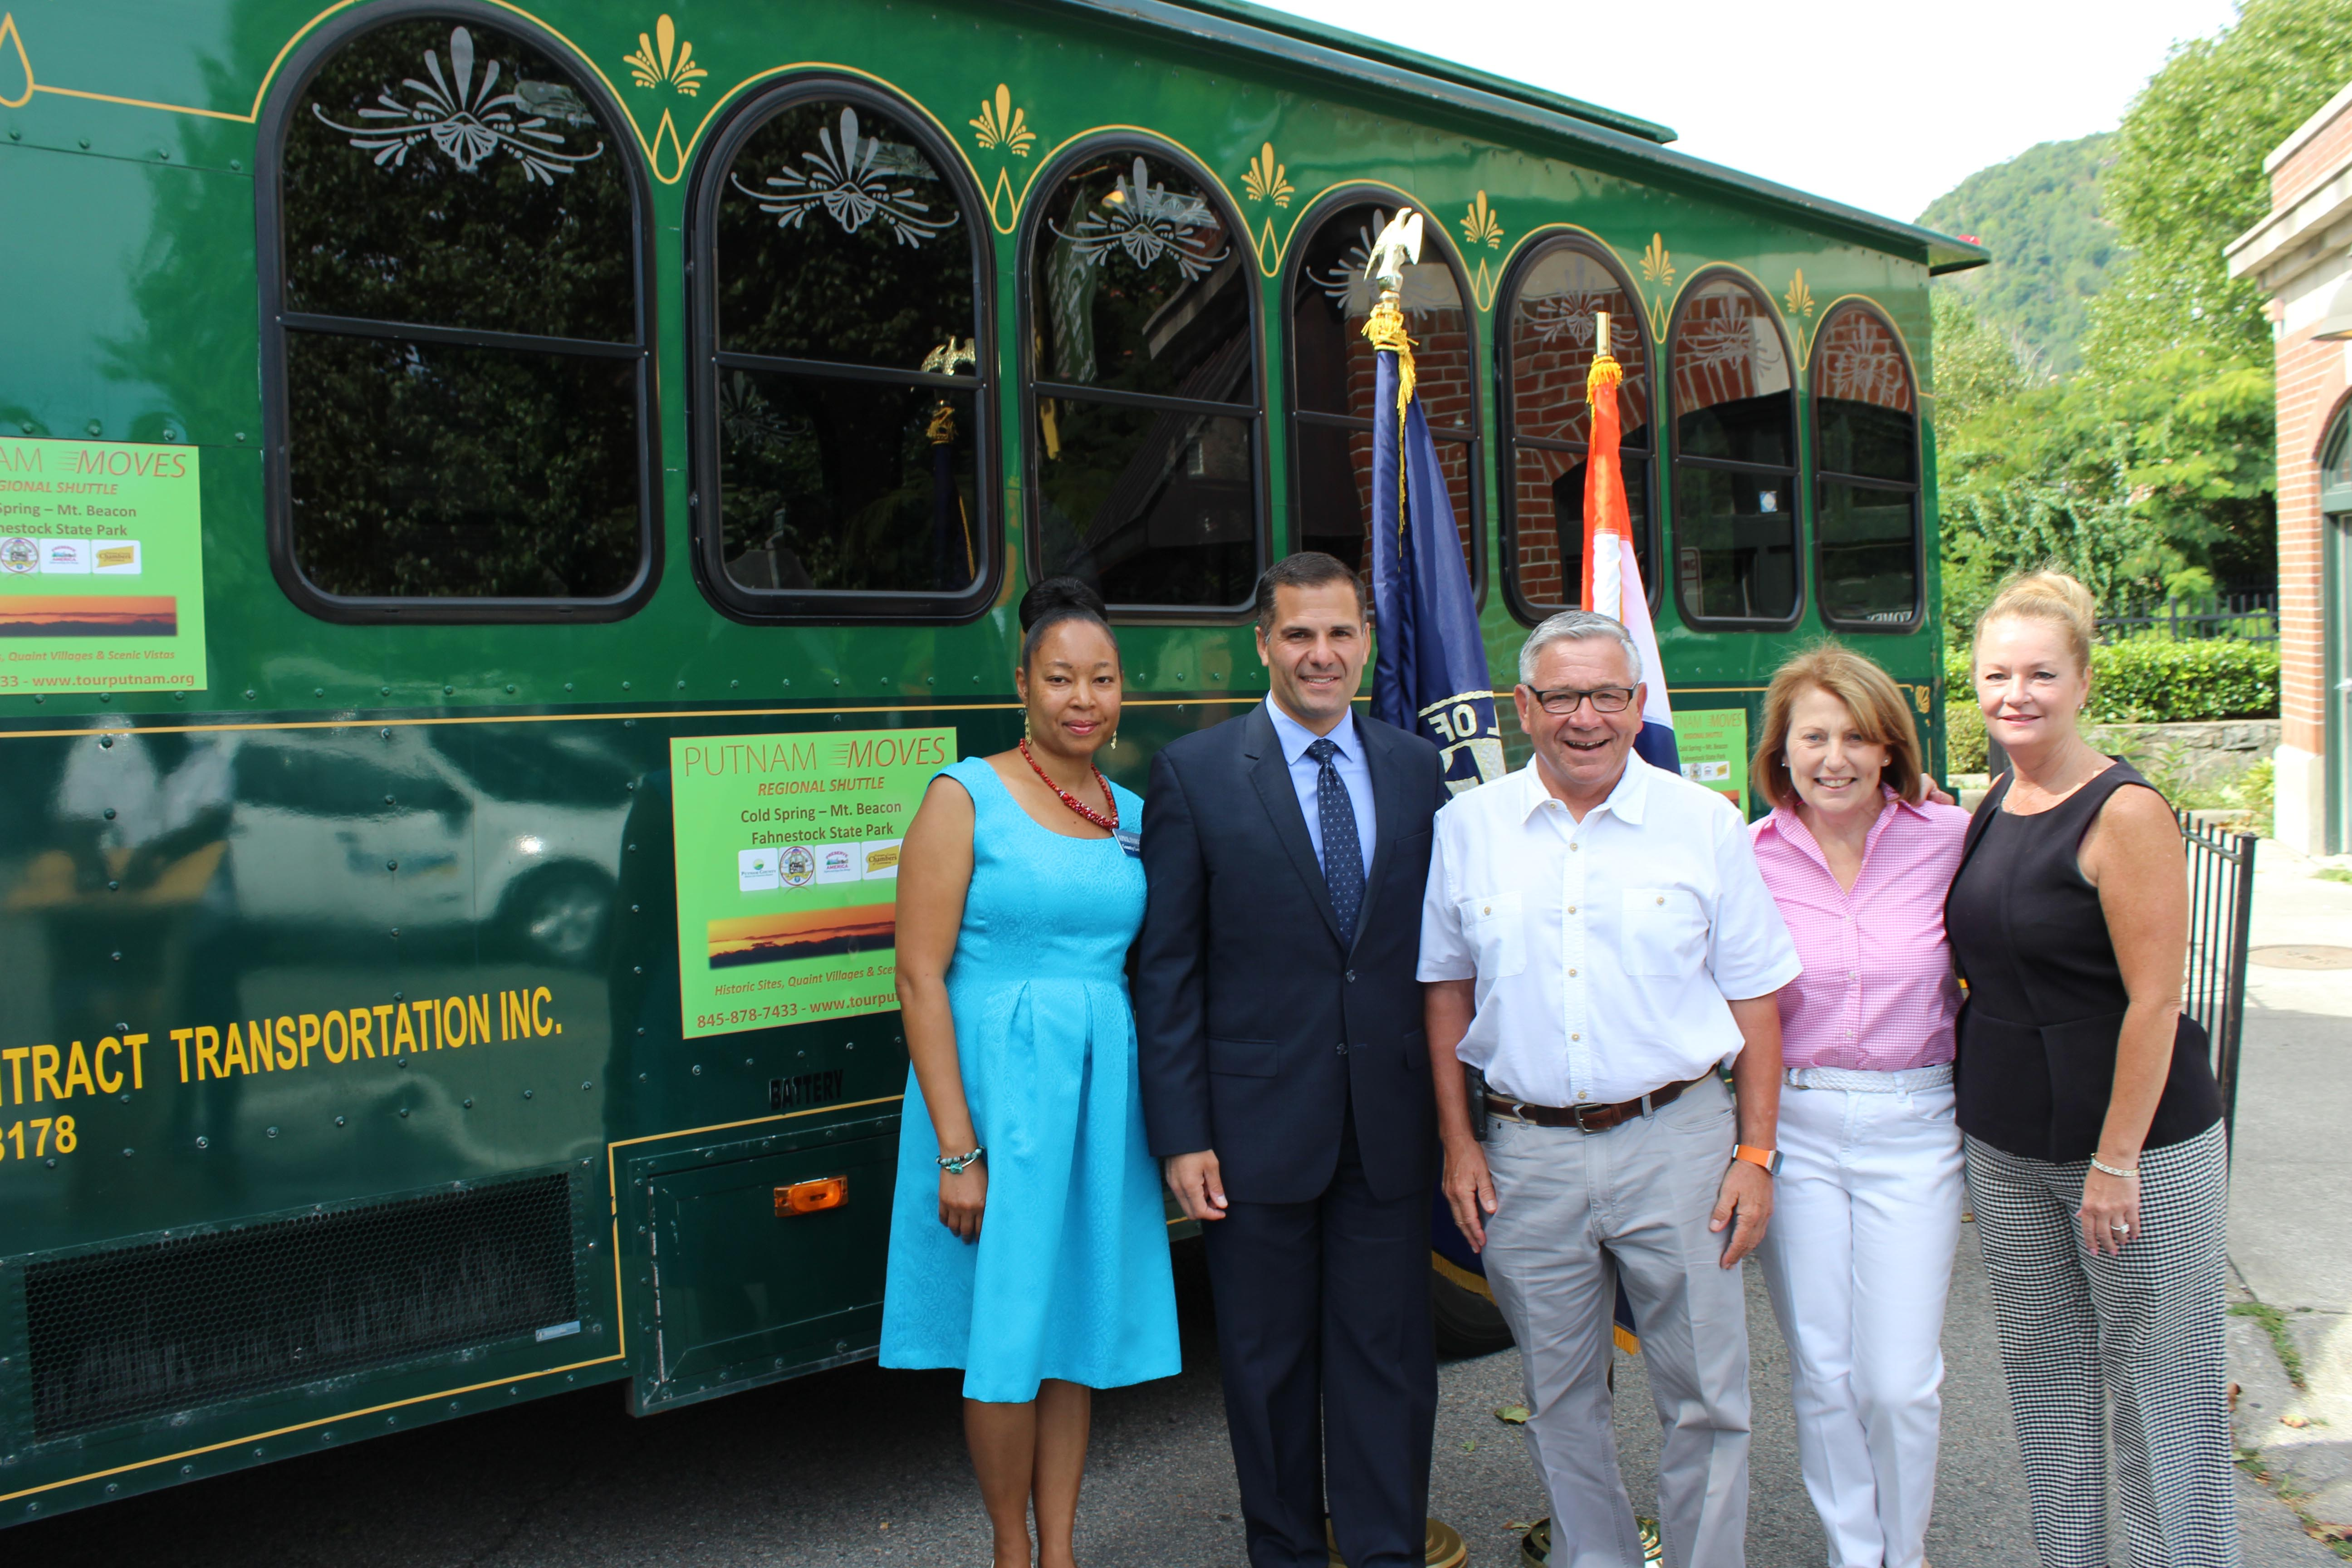 Cold Spring-Beacon Shuttle Highlights Regional Collaboration between Putnam and Dutchess Communities